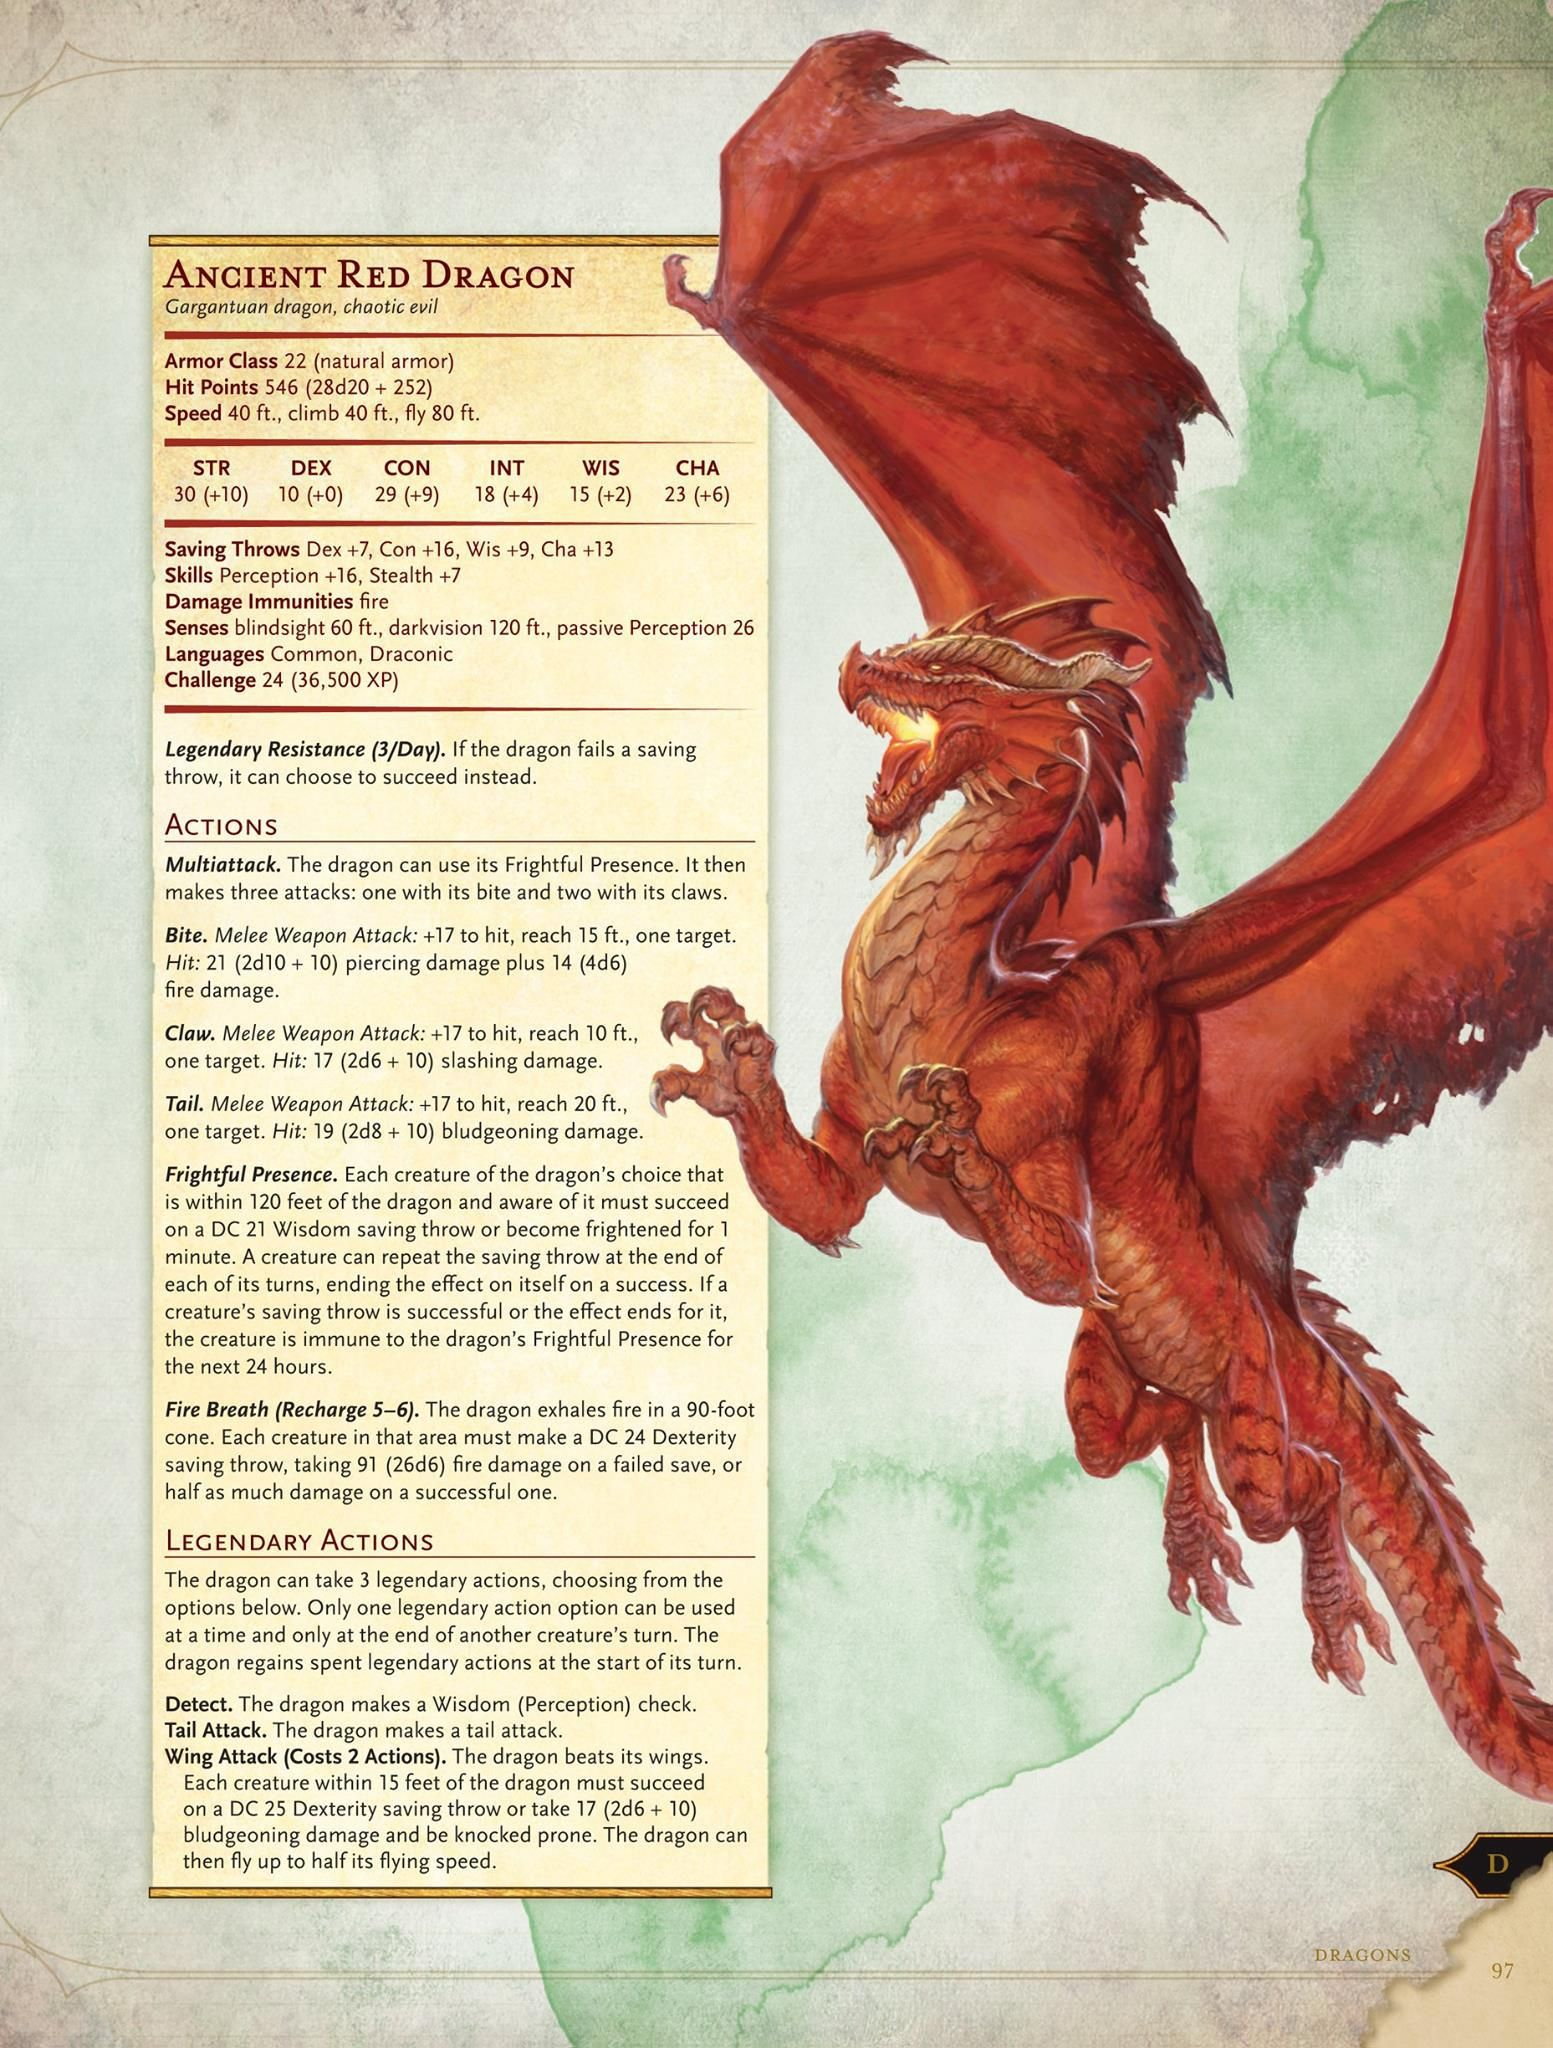 Dd 5th monster manual preview ancient red dragon dmb games dd 5th monster manual preview ancient red dragon dmb games solutioingenieria Choice Image